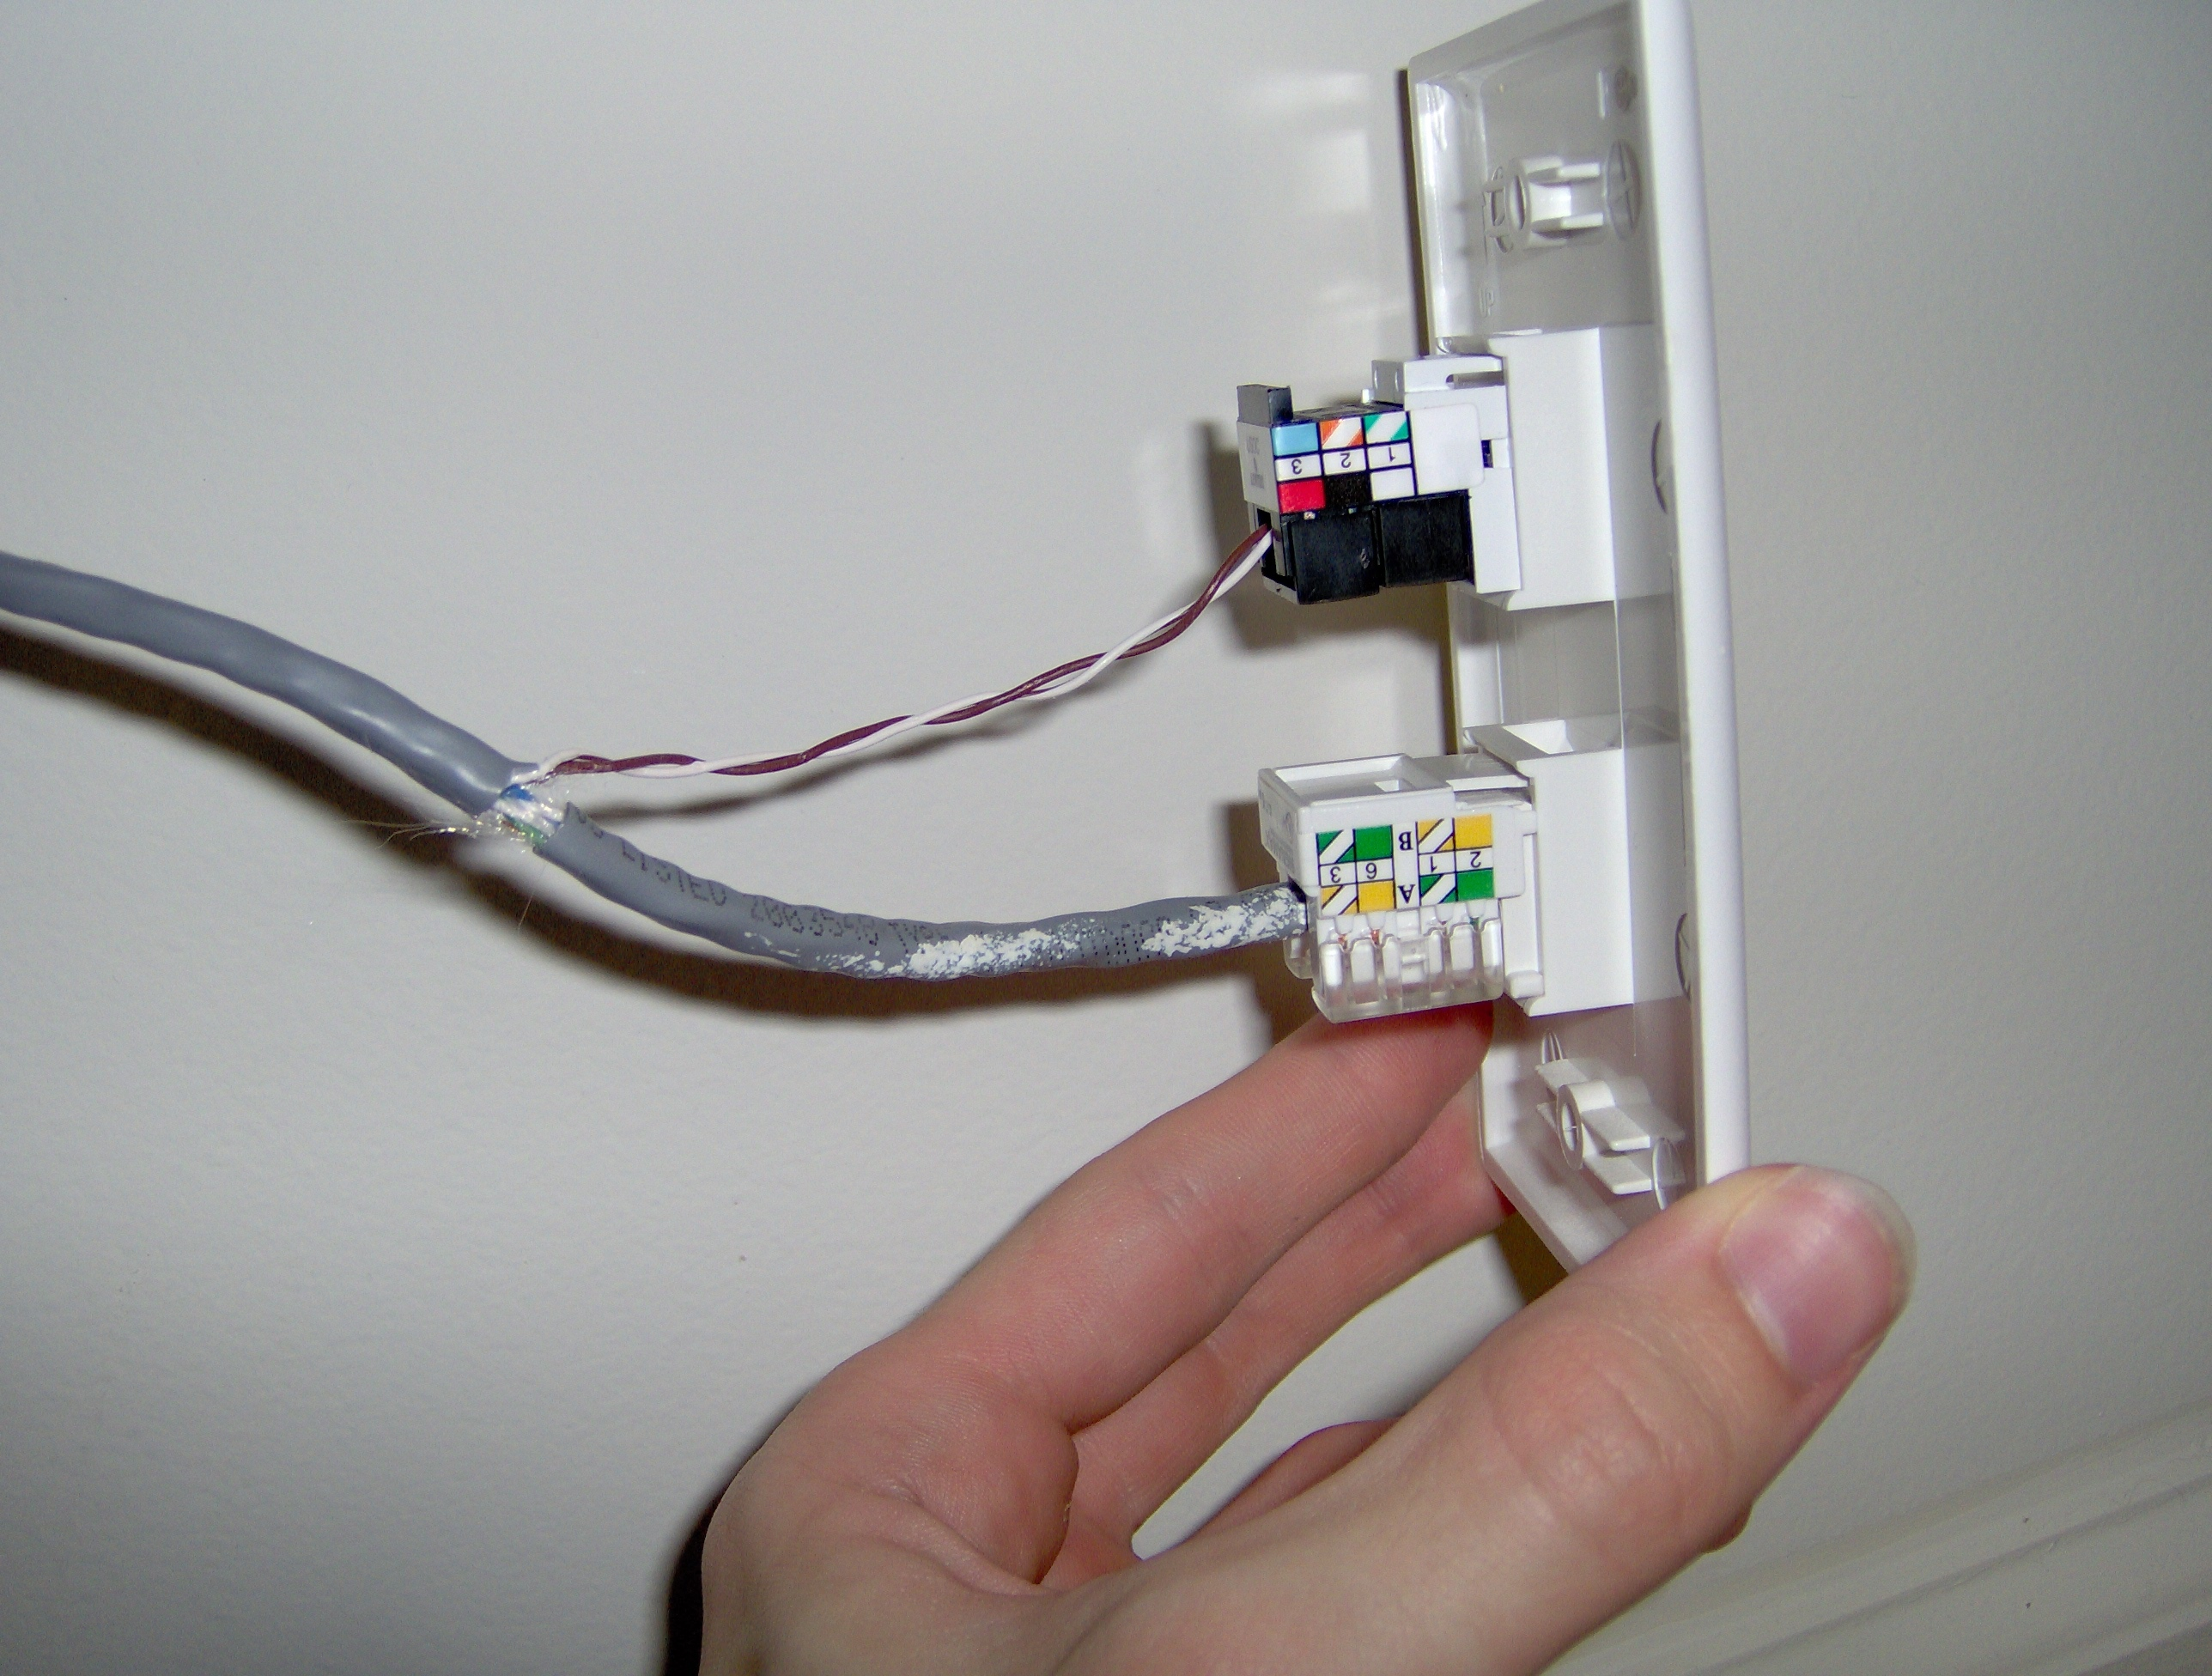 rj31x wiring fire alarm from router wiring diagram  panel wiring diagram rj31x jack wiring diagram hack your house run both ethernet and phone over existing cat 5hack your house run both